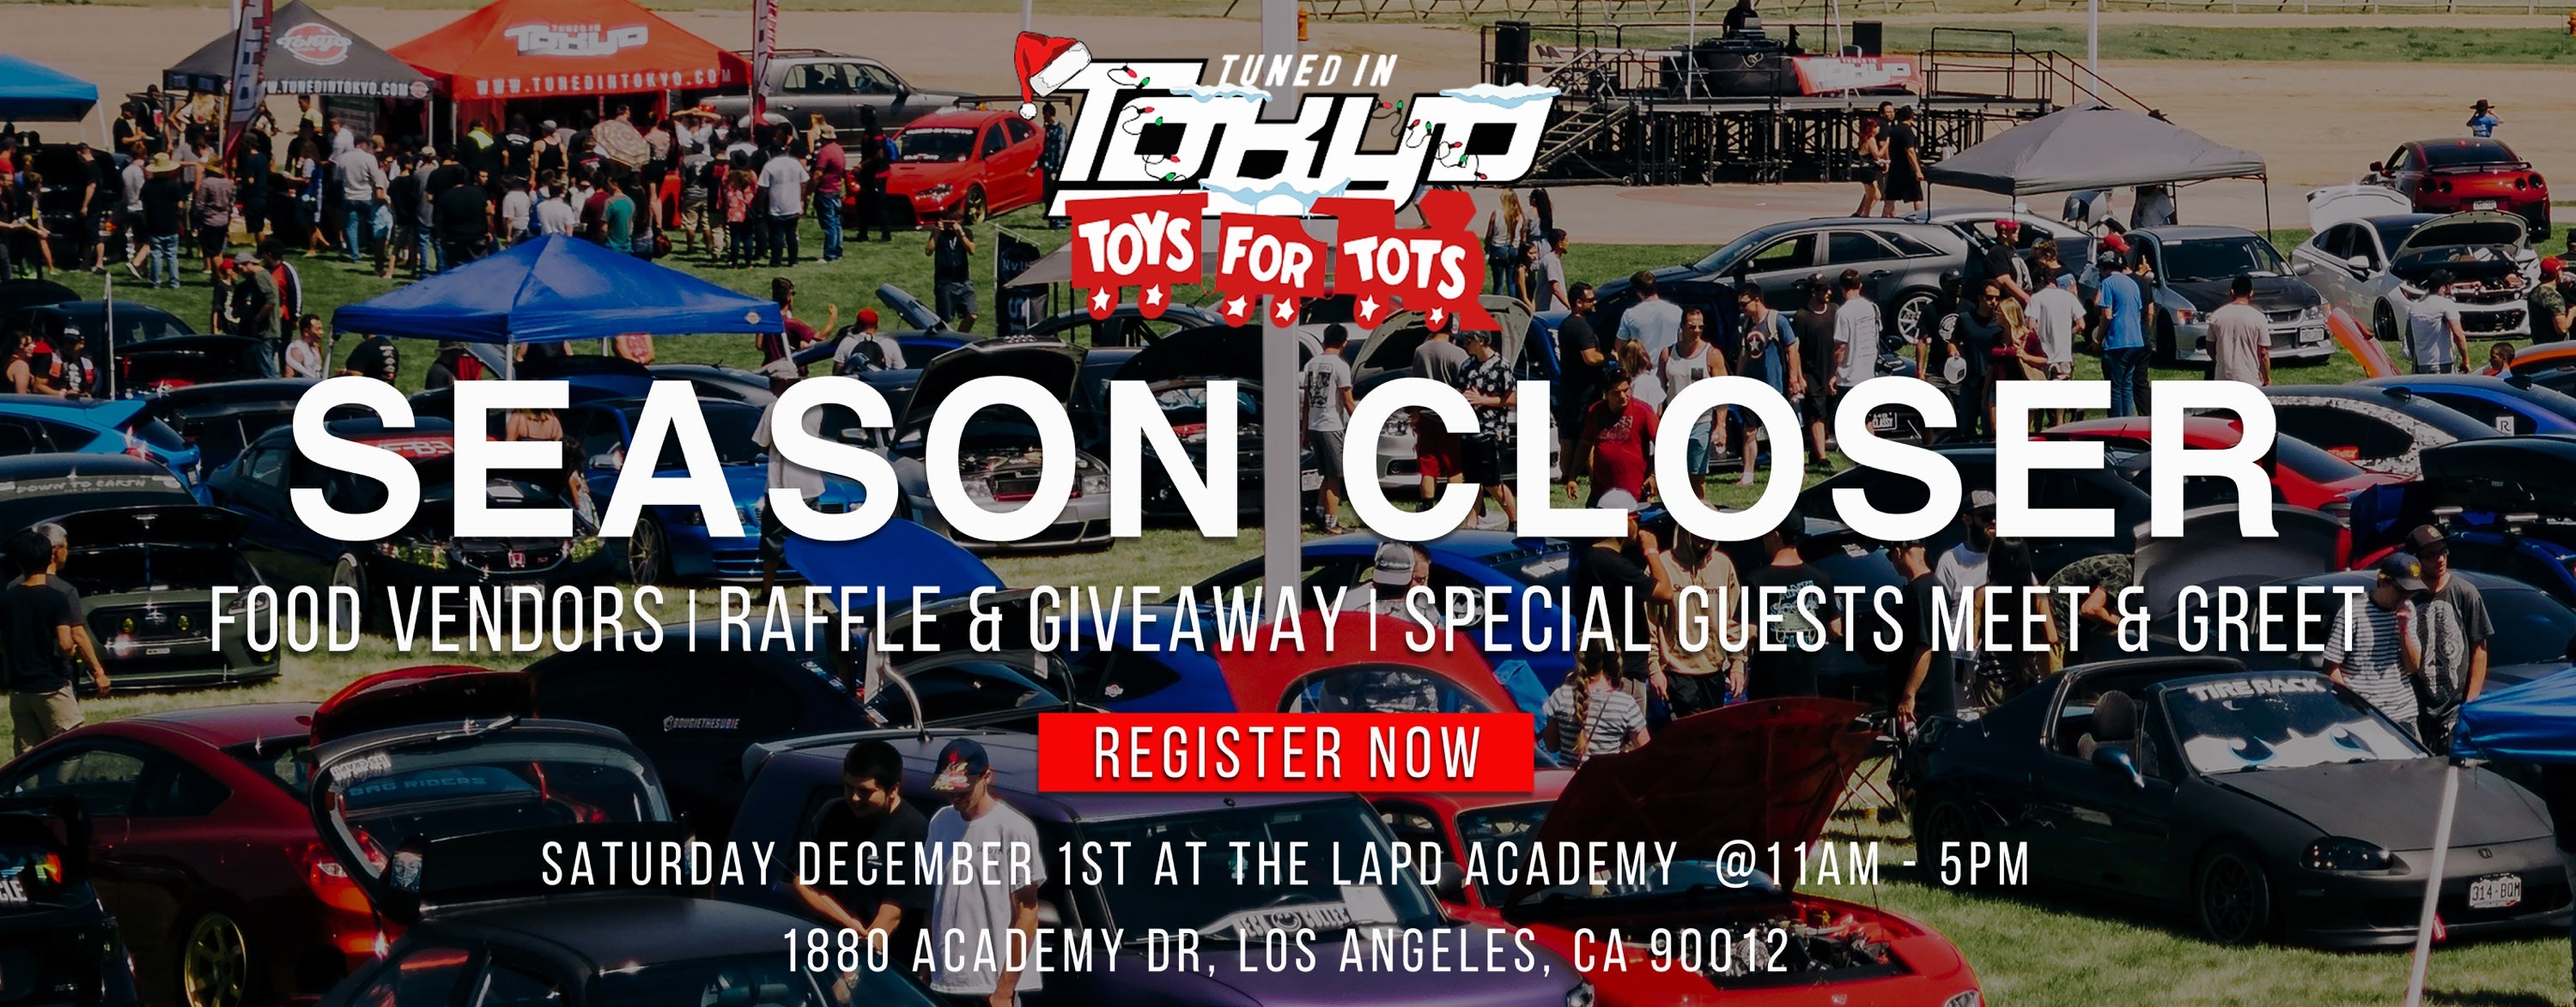 Toys For Tots Tunedintokyoevents - Toys for tots car show 2018